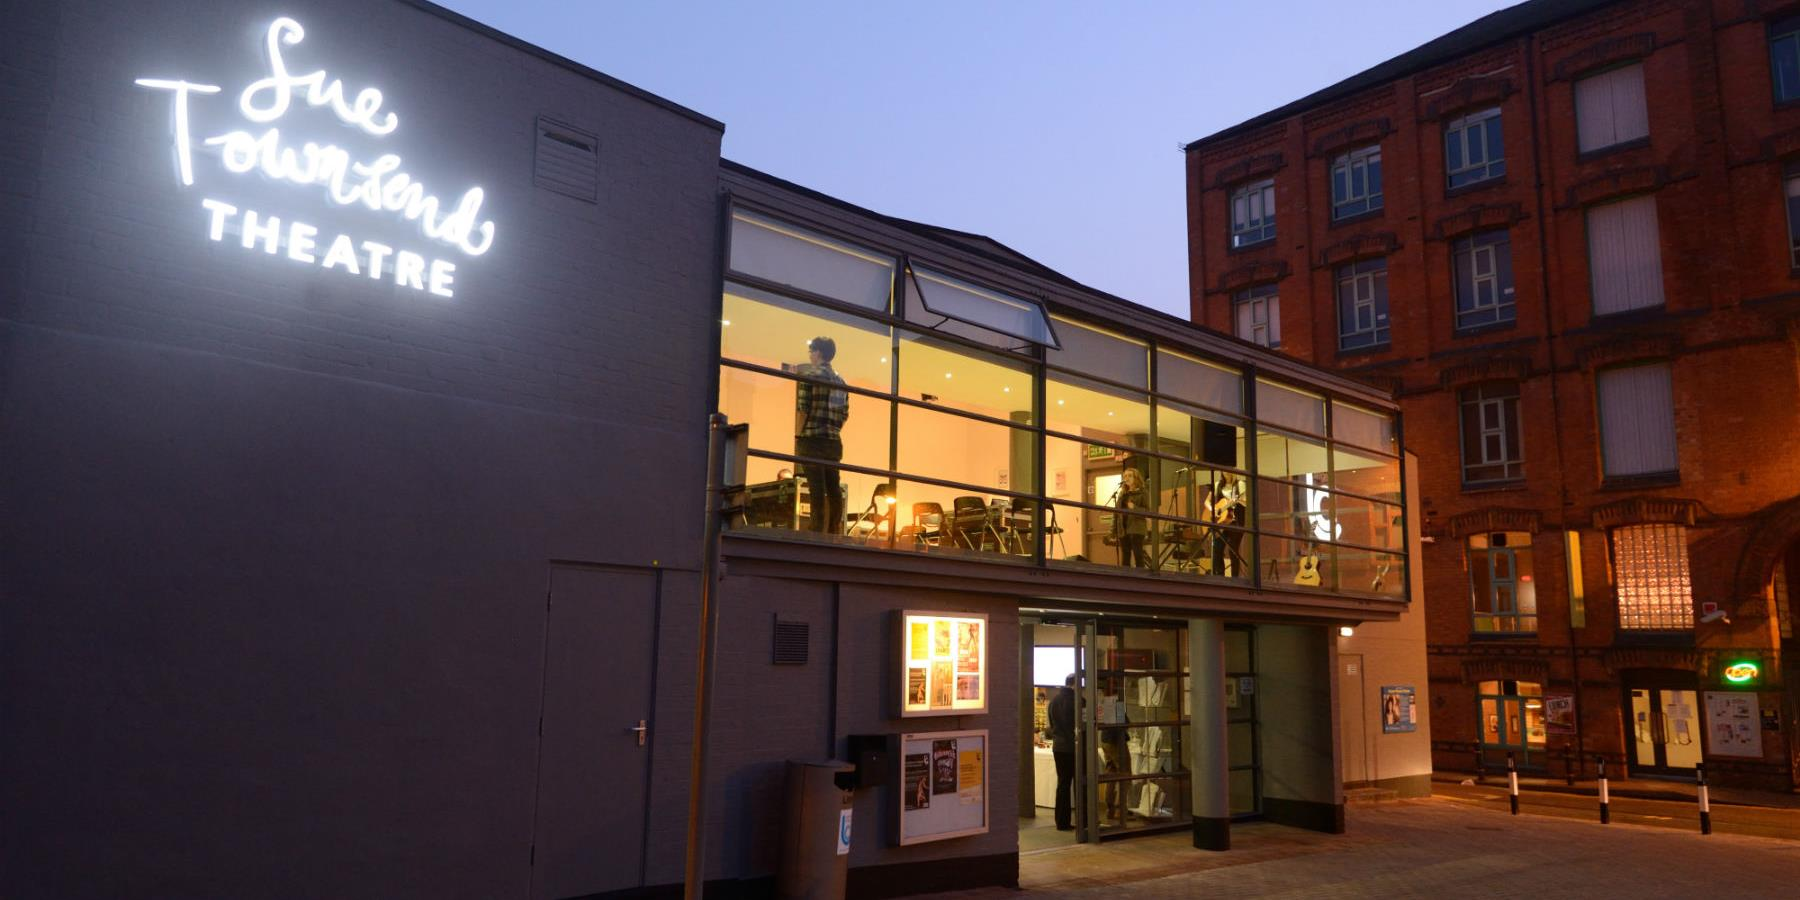 Sue Townsend Theatre - Attractions, See & Do in Leicester